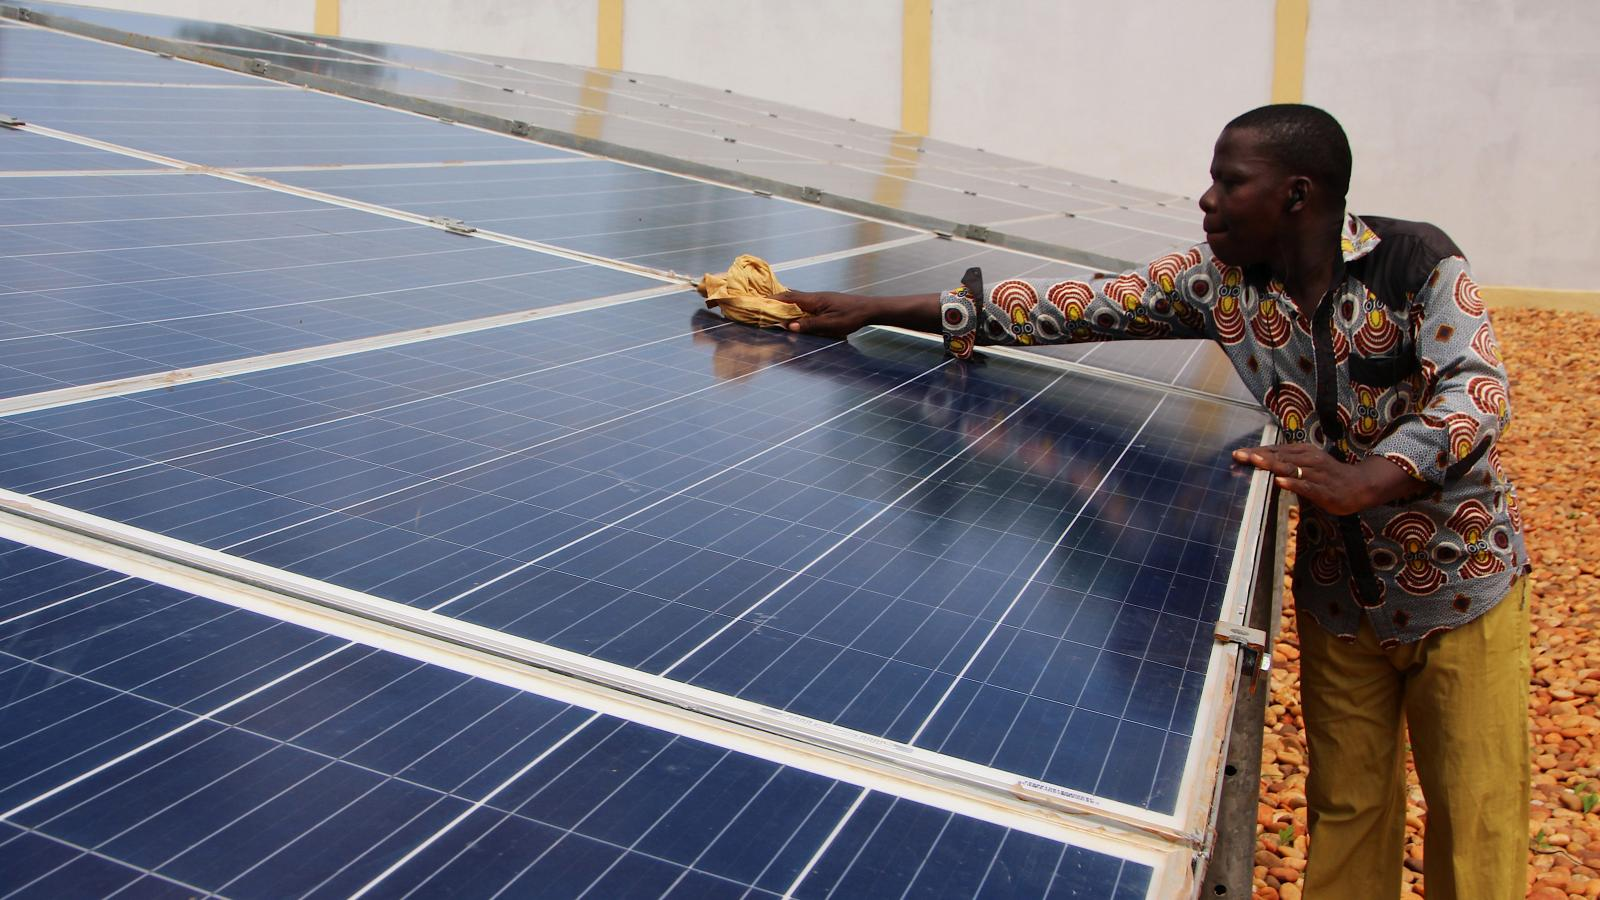 Nigeria Solar Power Could Fix Costly Electricity Problems